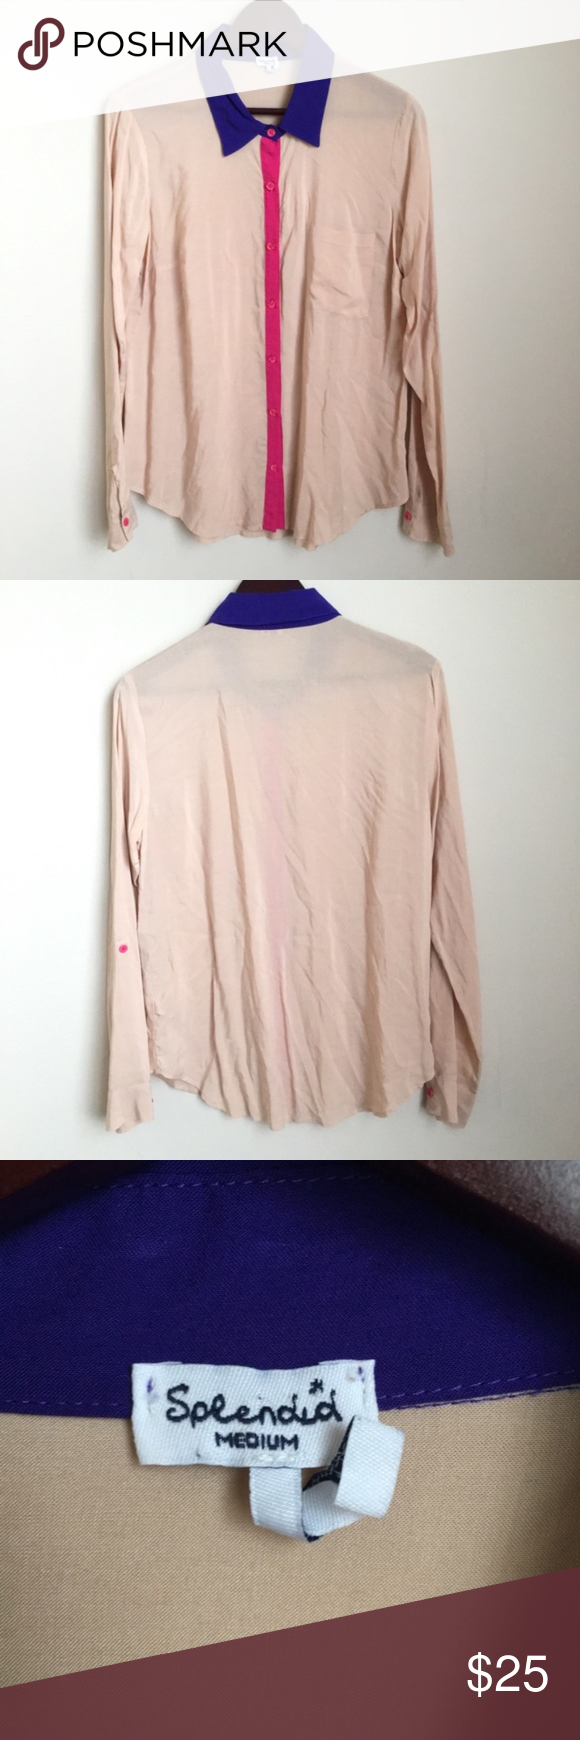 454aee4e515 Splendid Blush Pink Colorblock Button Down Shirt Blush pink with contrasting  purple and hot pink detail. Splendid top. Women s size M. Button up.